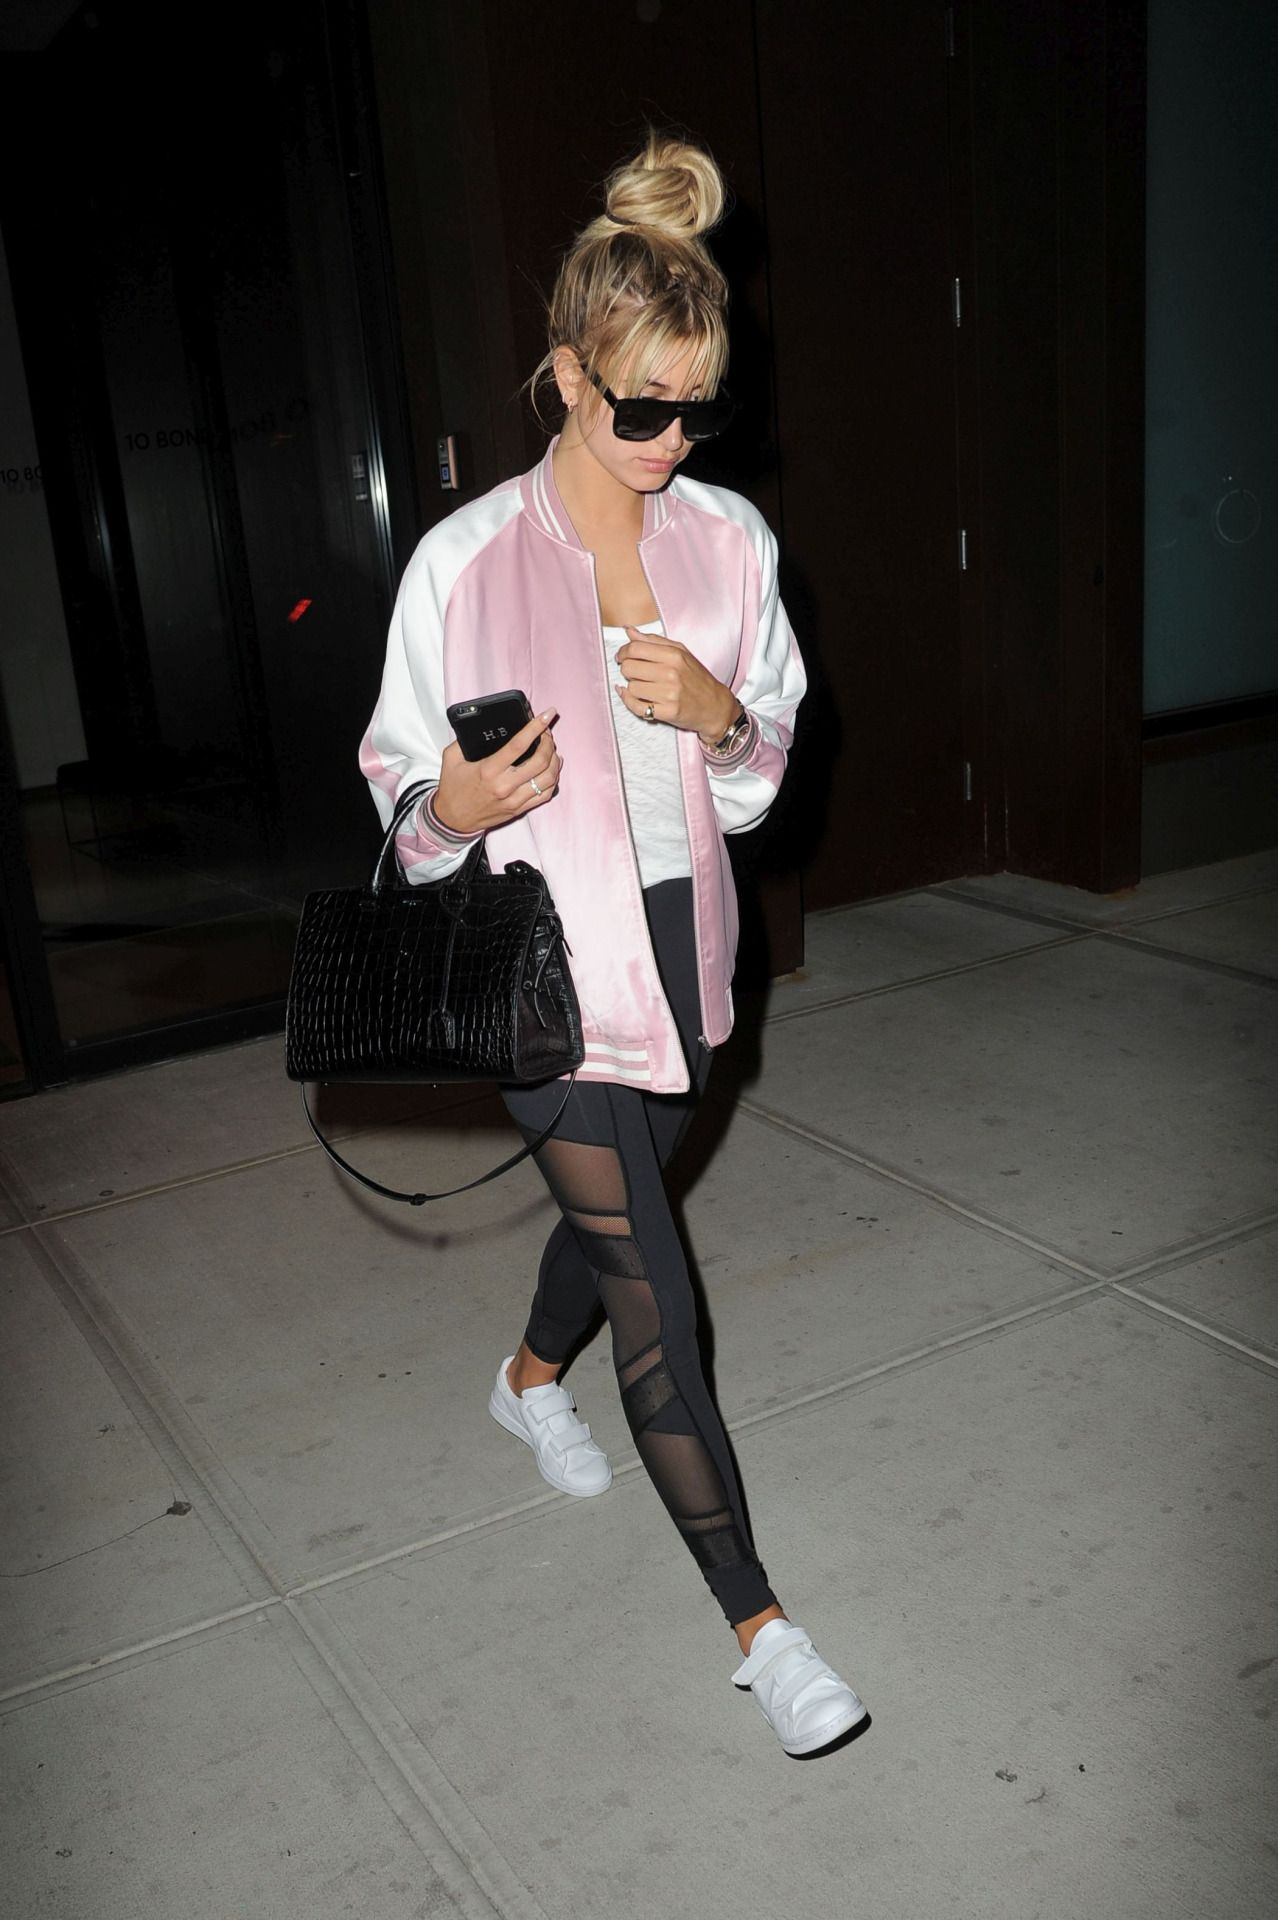 Hailey Baldwin looking bomb-er in this bomber jacket and leggings combo